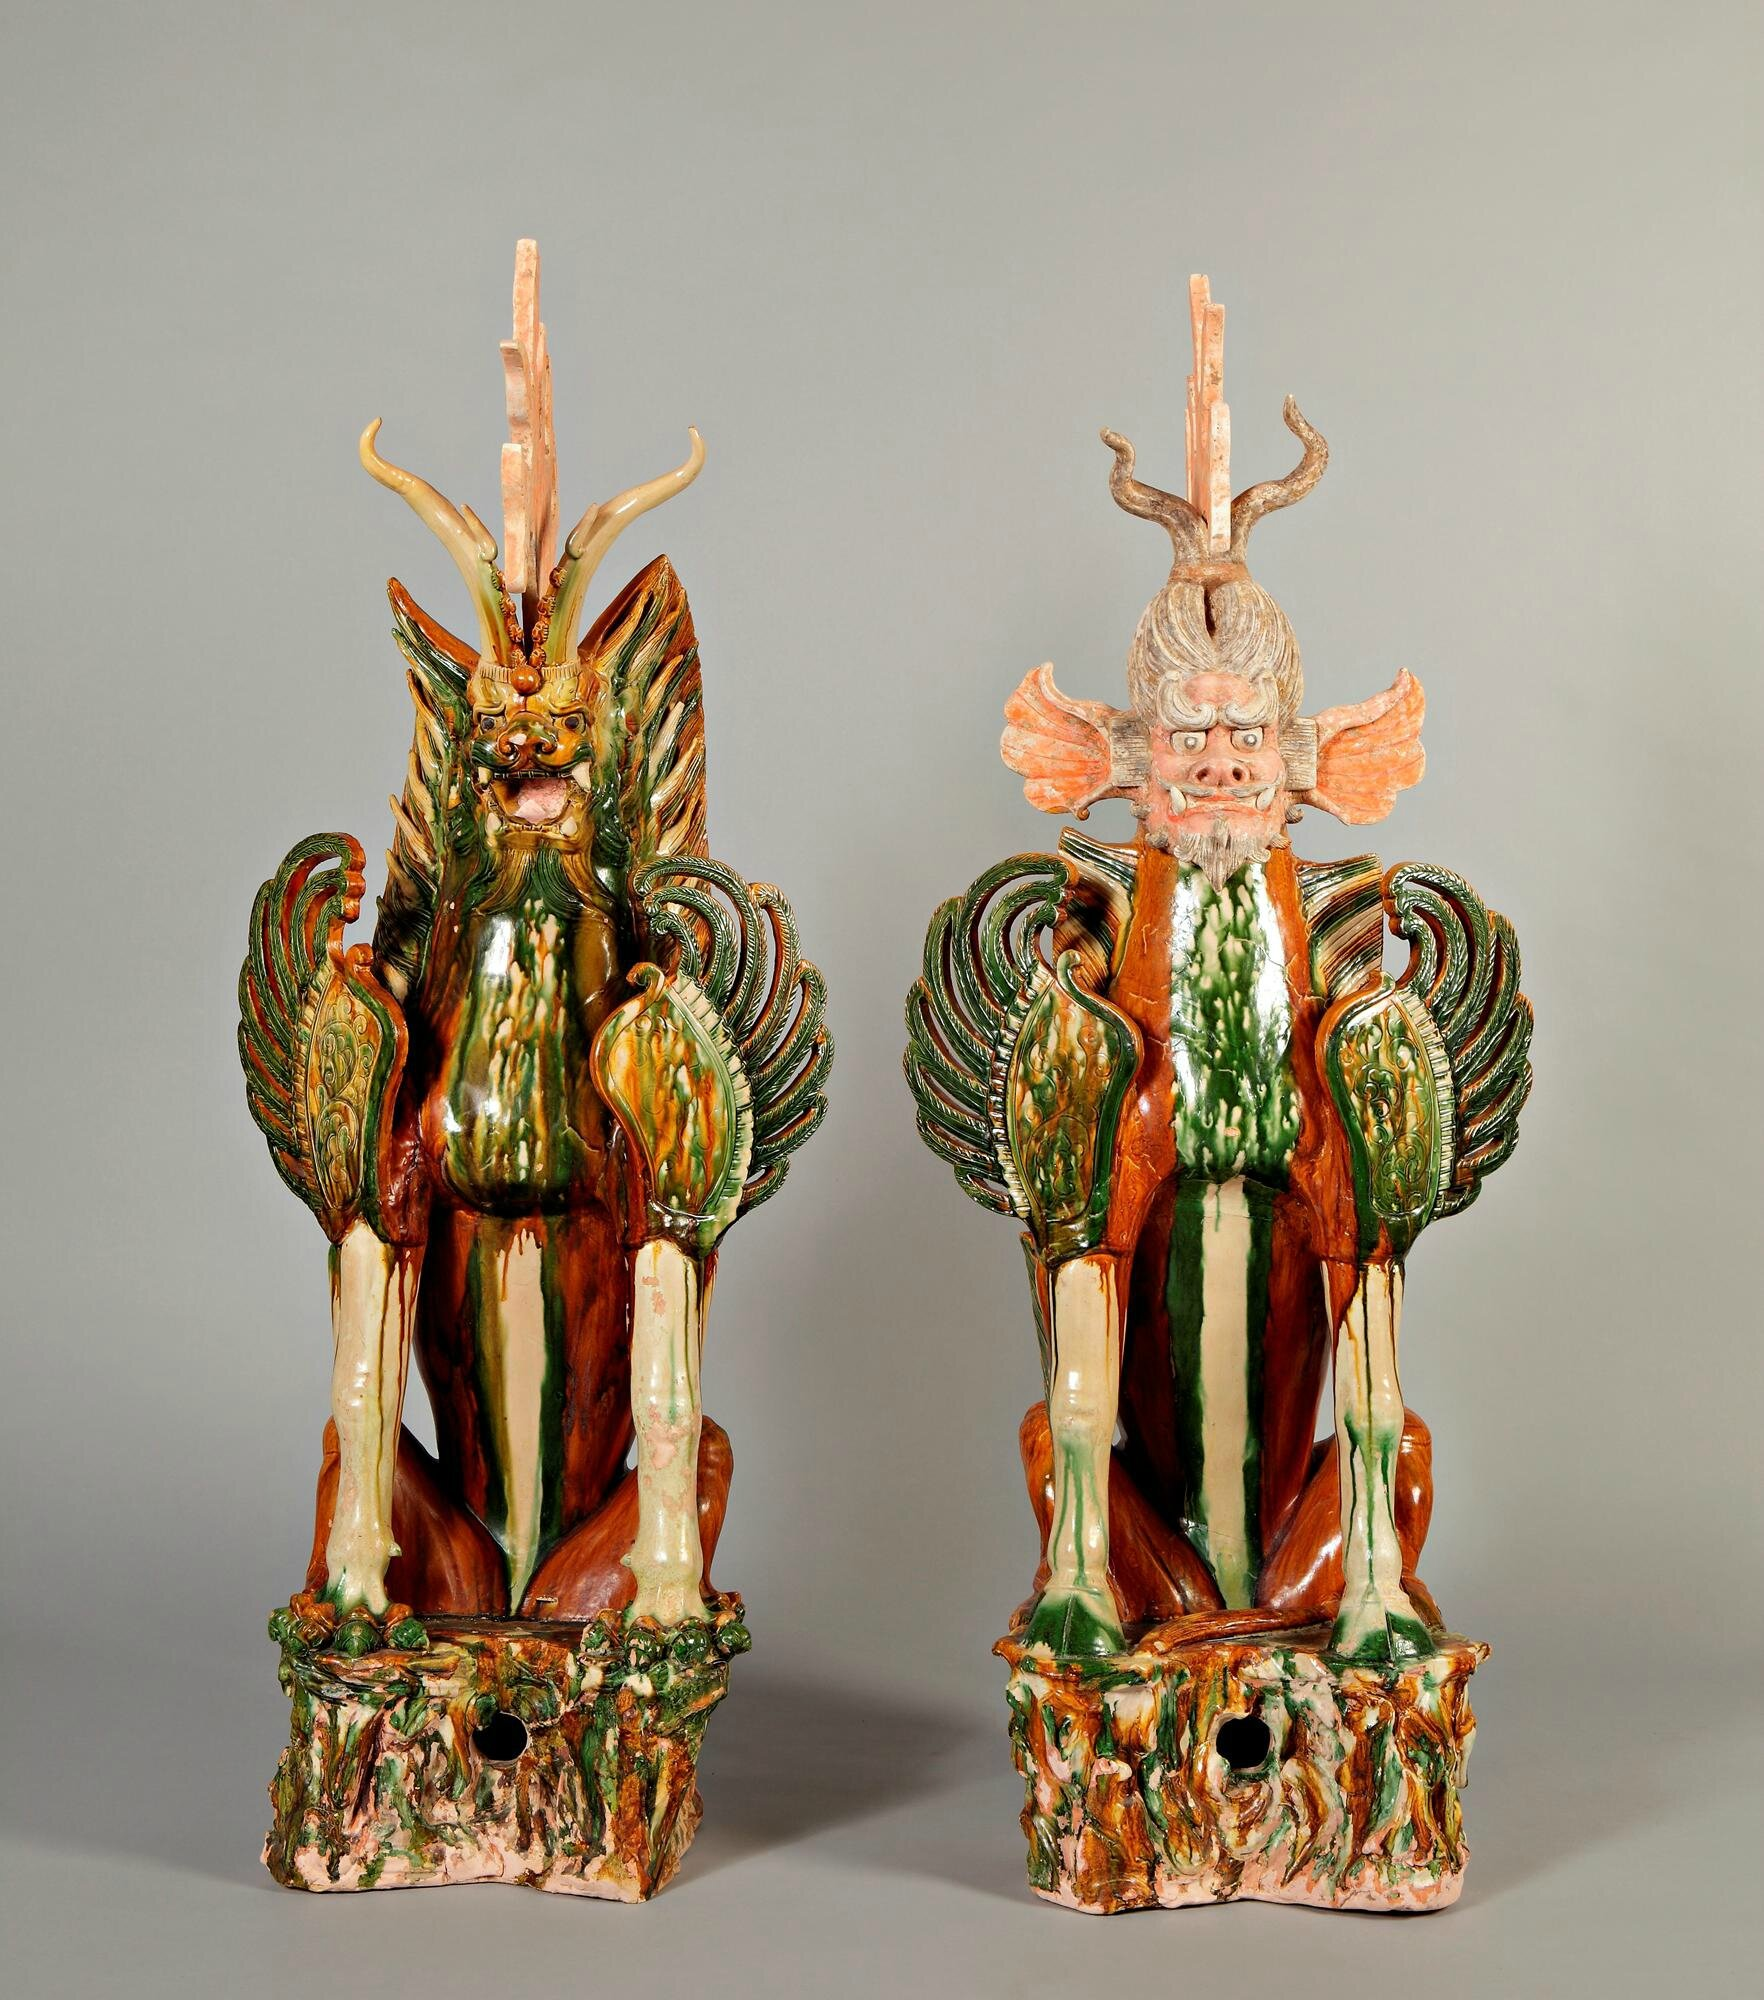 Large Sancai-Glazed Earth Spirits, Zhenmoushou, China, Tang Dynasty (618 - 907)